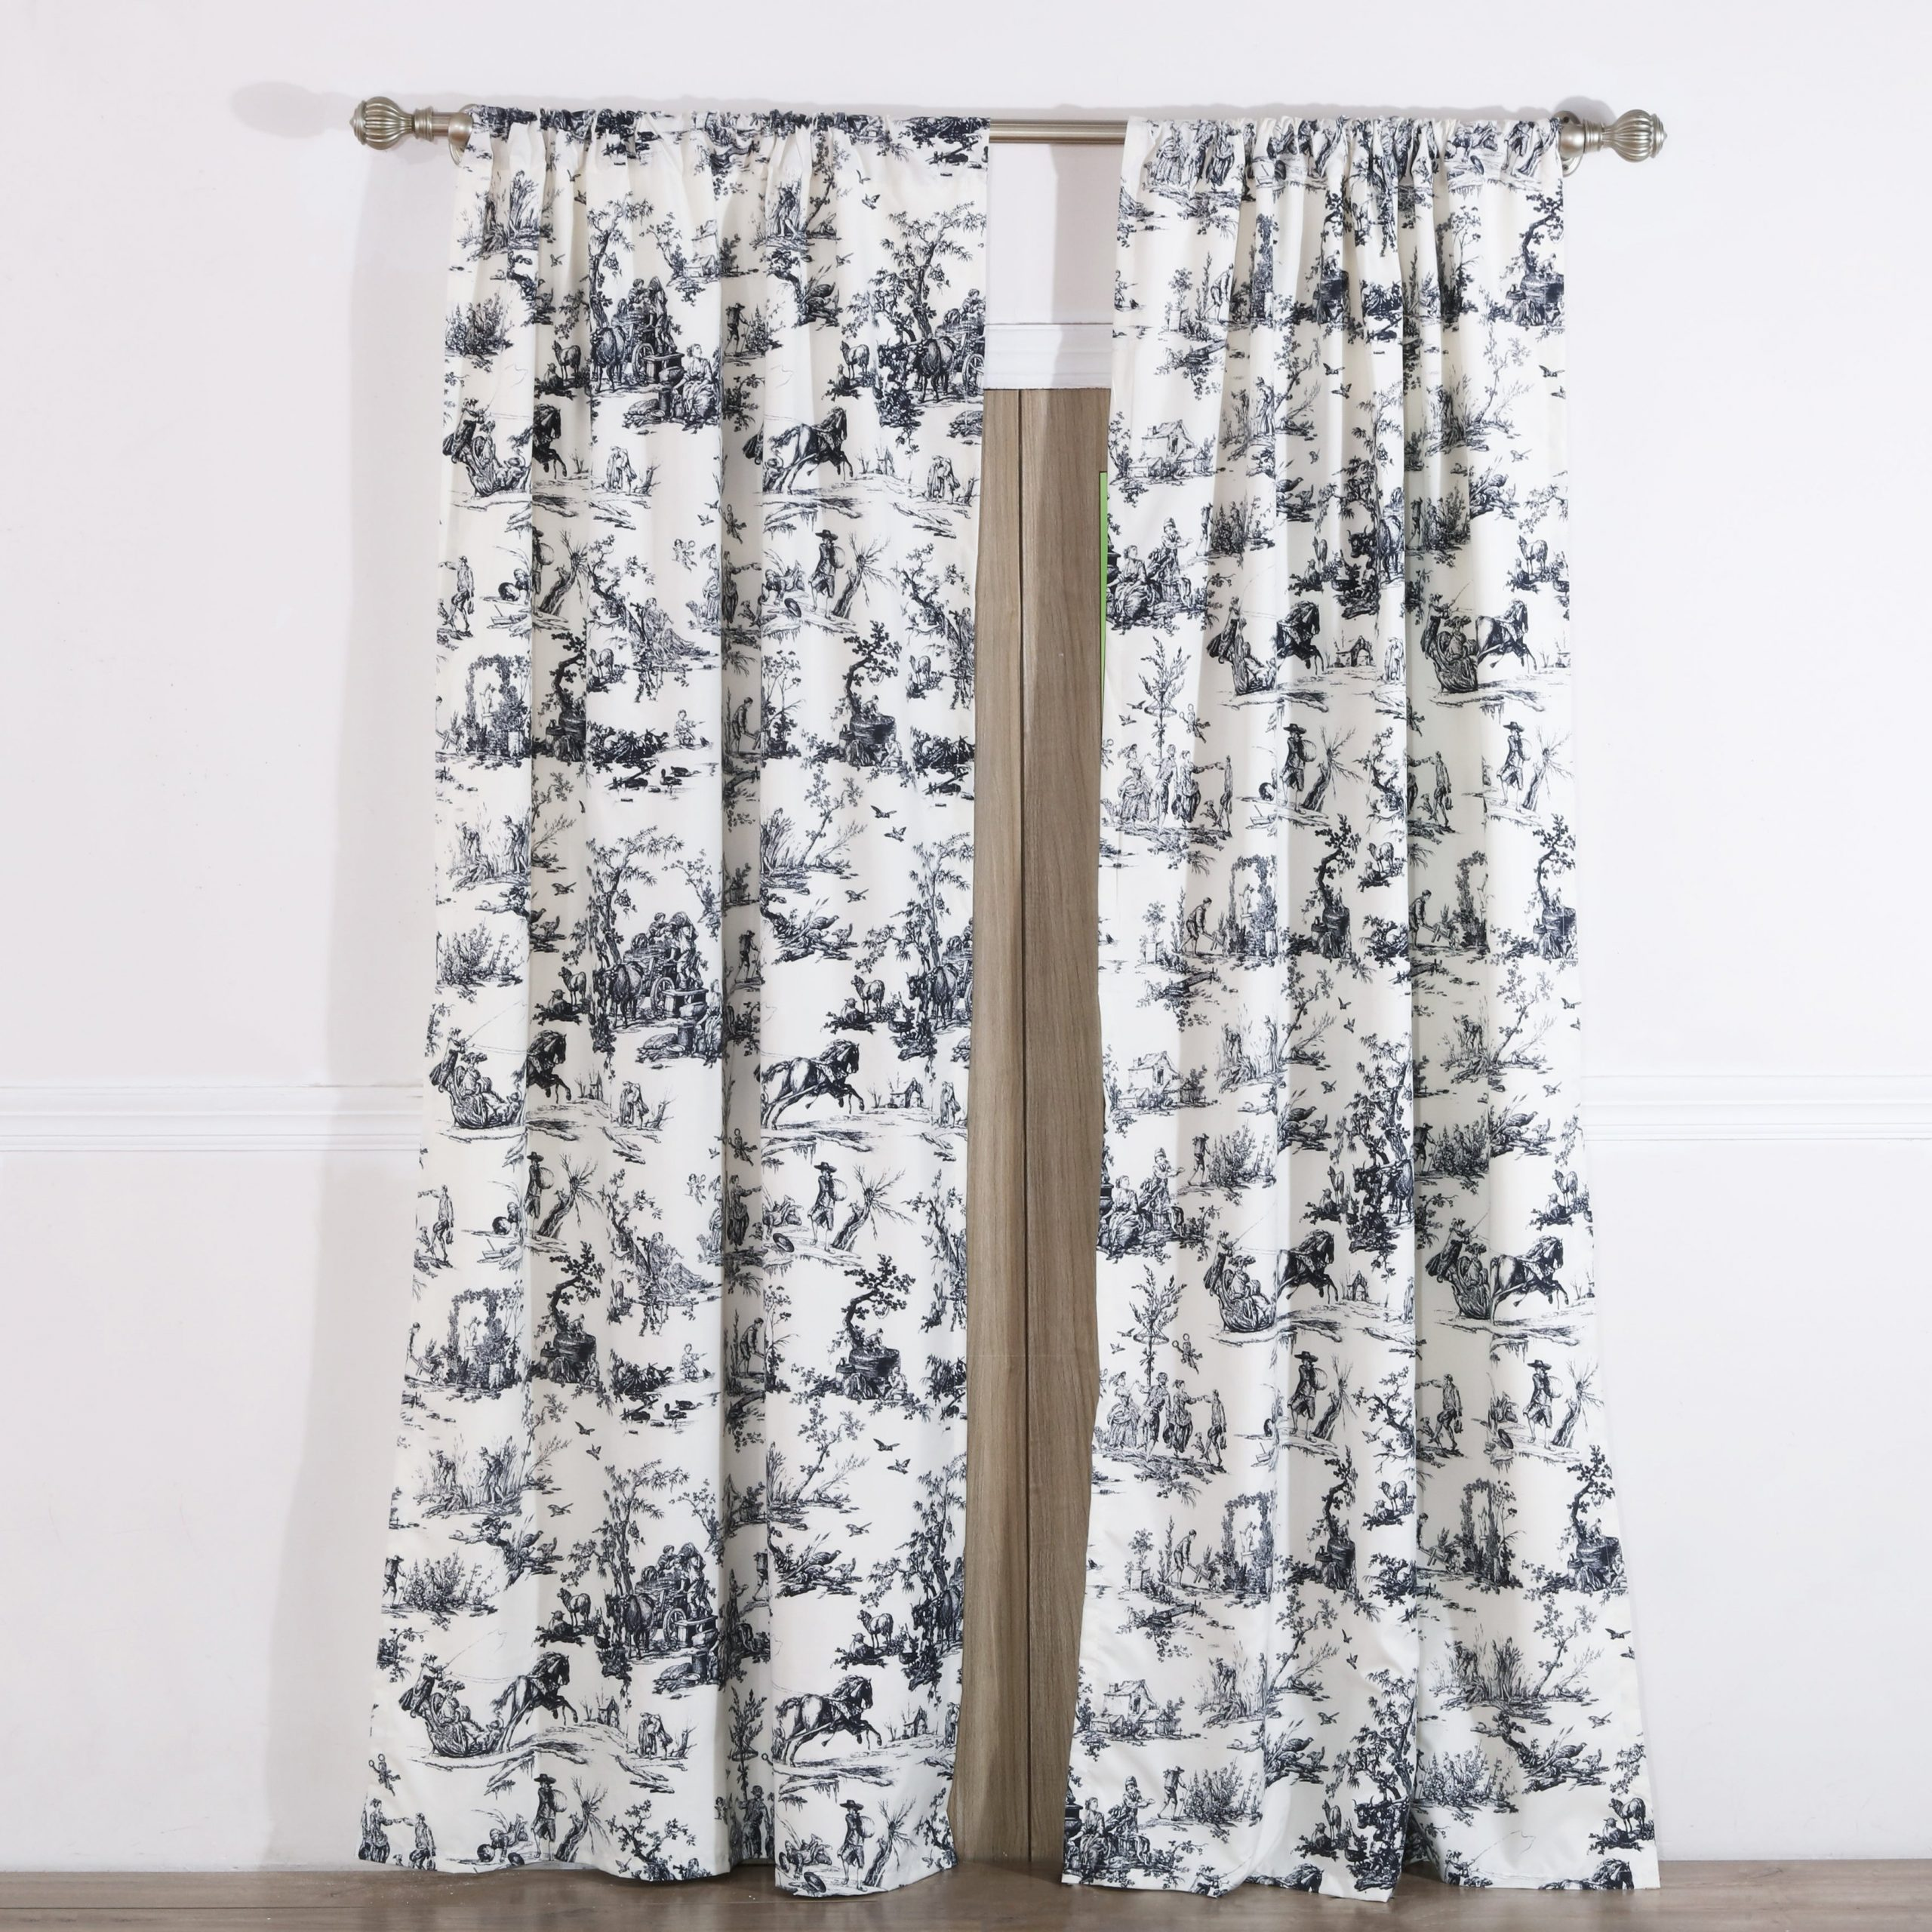 Preferred Classic Toile Black Curtain Panel Pair With Tiebacks (Set Of Two Panels) Intended For The Gray Barn Kind Koala Curtain Panel Pairs (View 18 of 20)